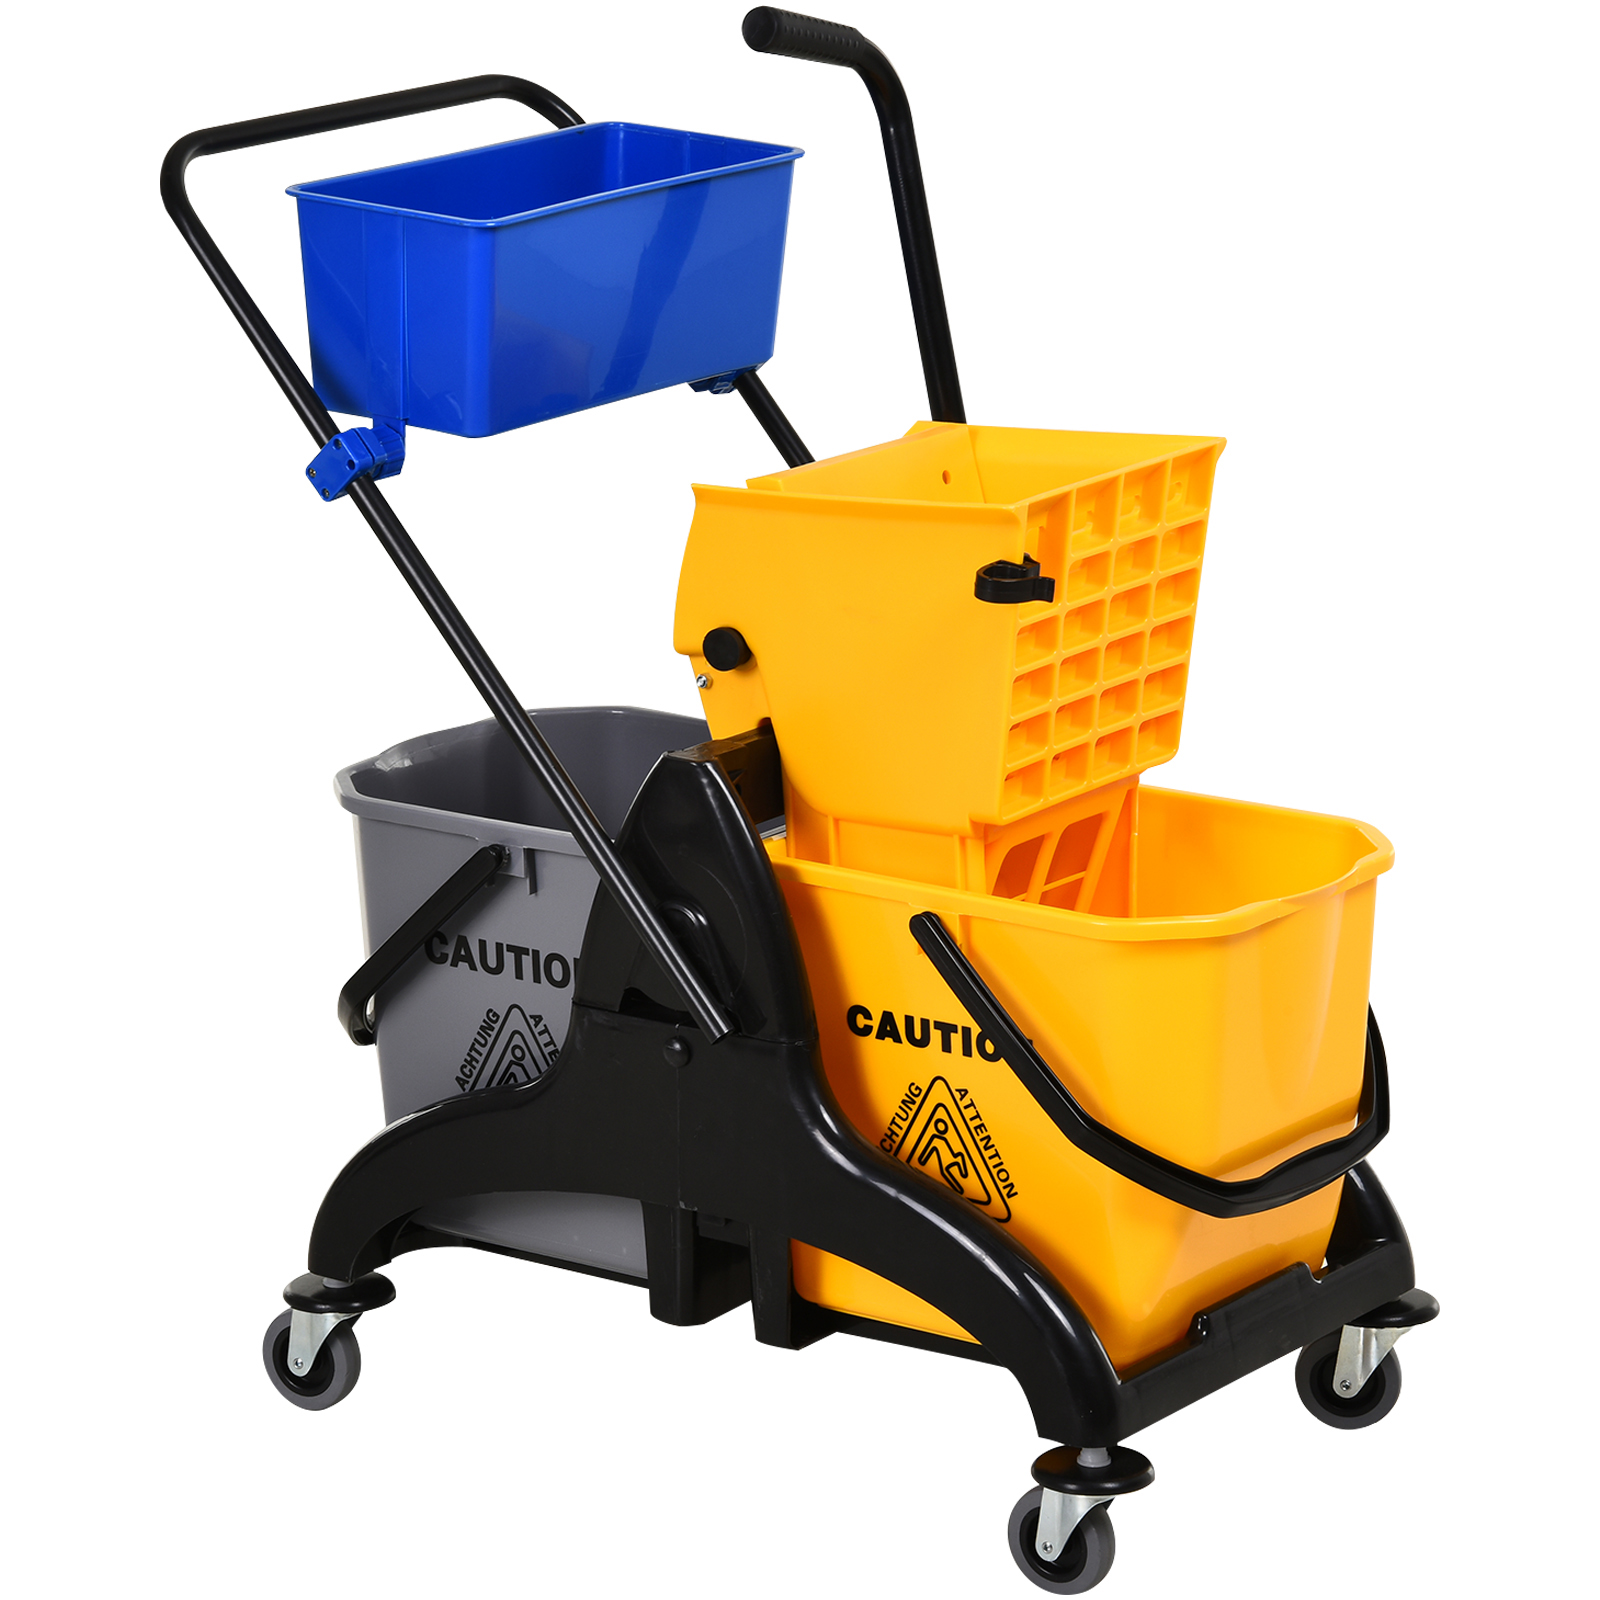 5.28 Gallon Mop Bucket with Wringer Combo Commercial Home Cleaning Cart with Removable Side Press Wringer Design Cleaning Cart with 4 Wheels